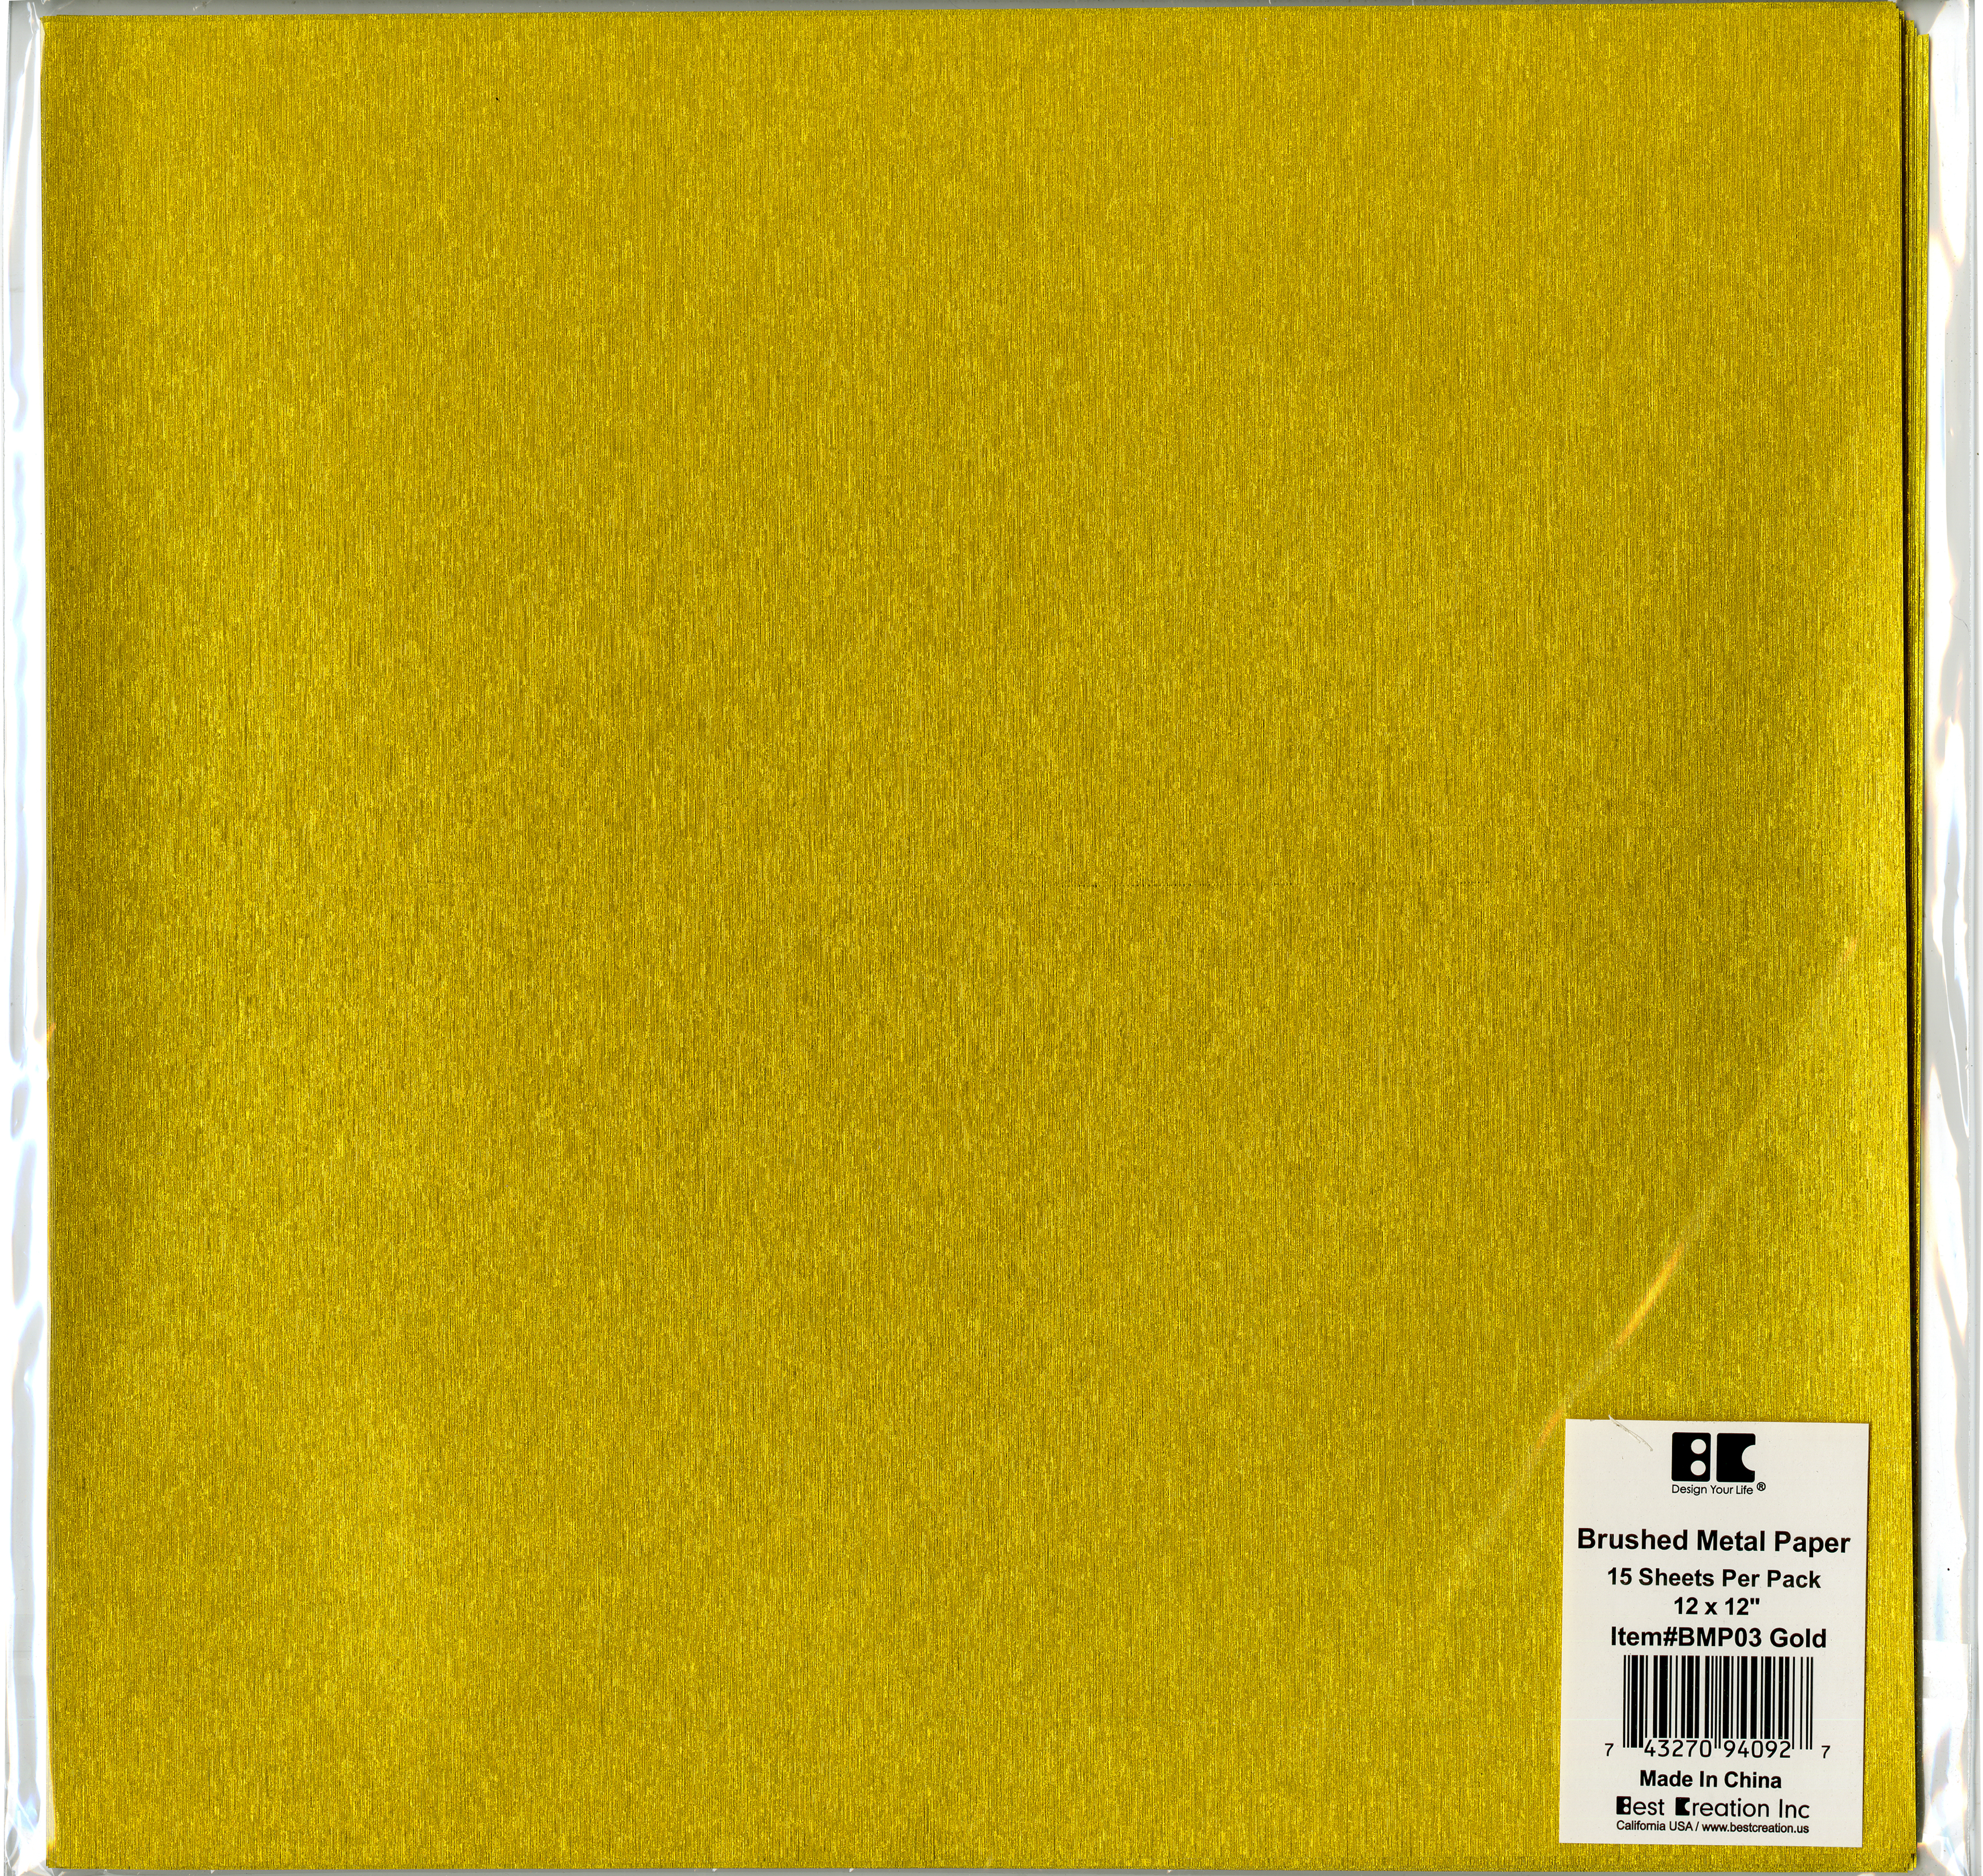 Brushed Metal Paper - Gold, 12x12 (Best Creation)